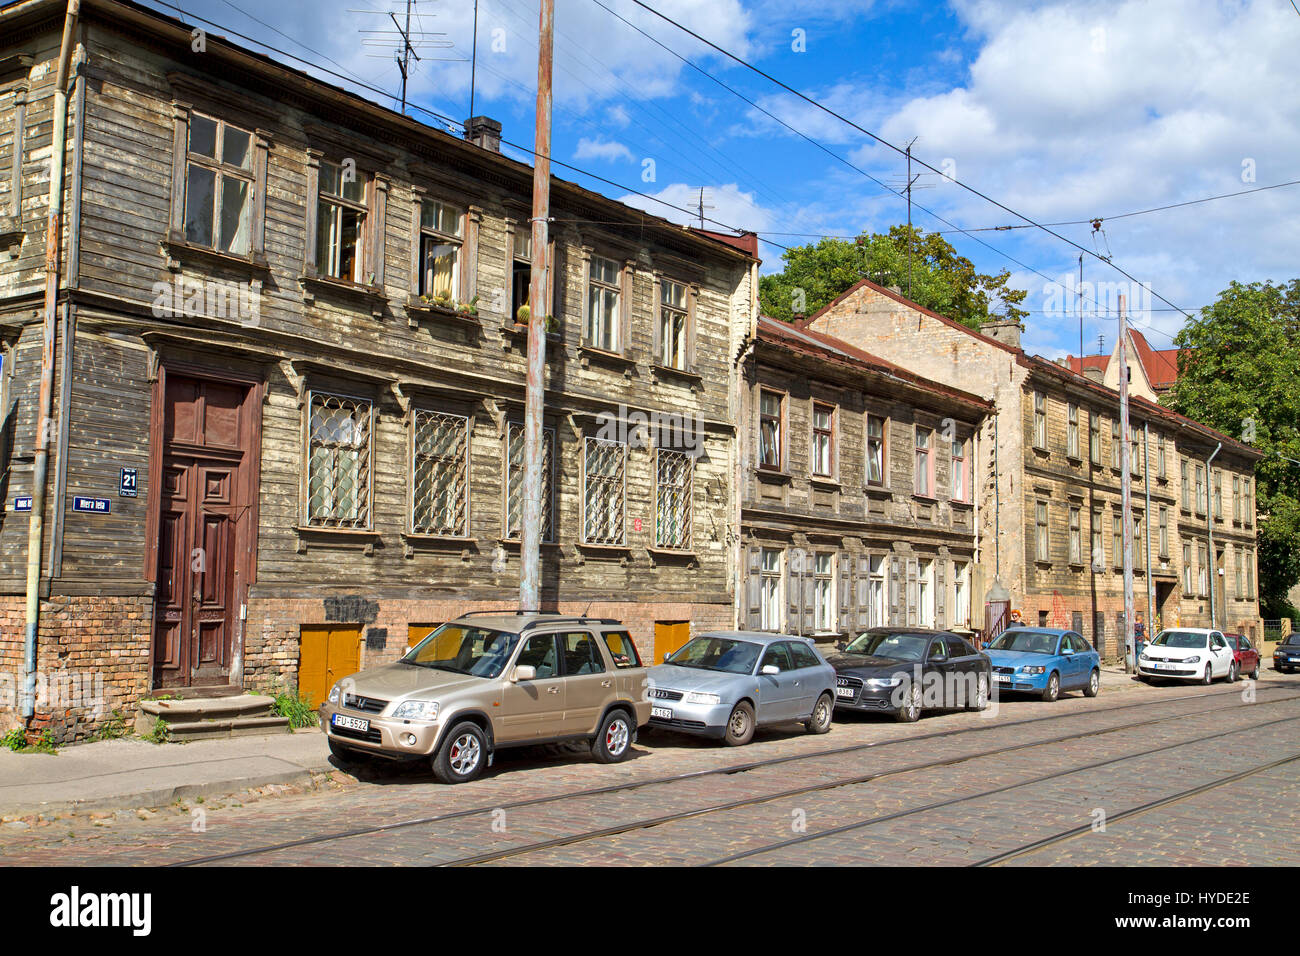 Decrepit buildings on Miera Street in Riga - Stock Image